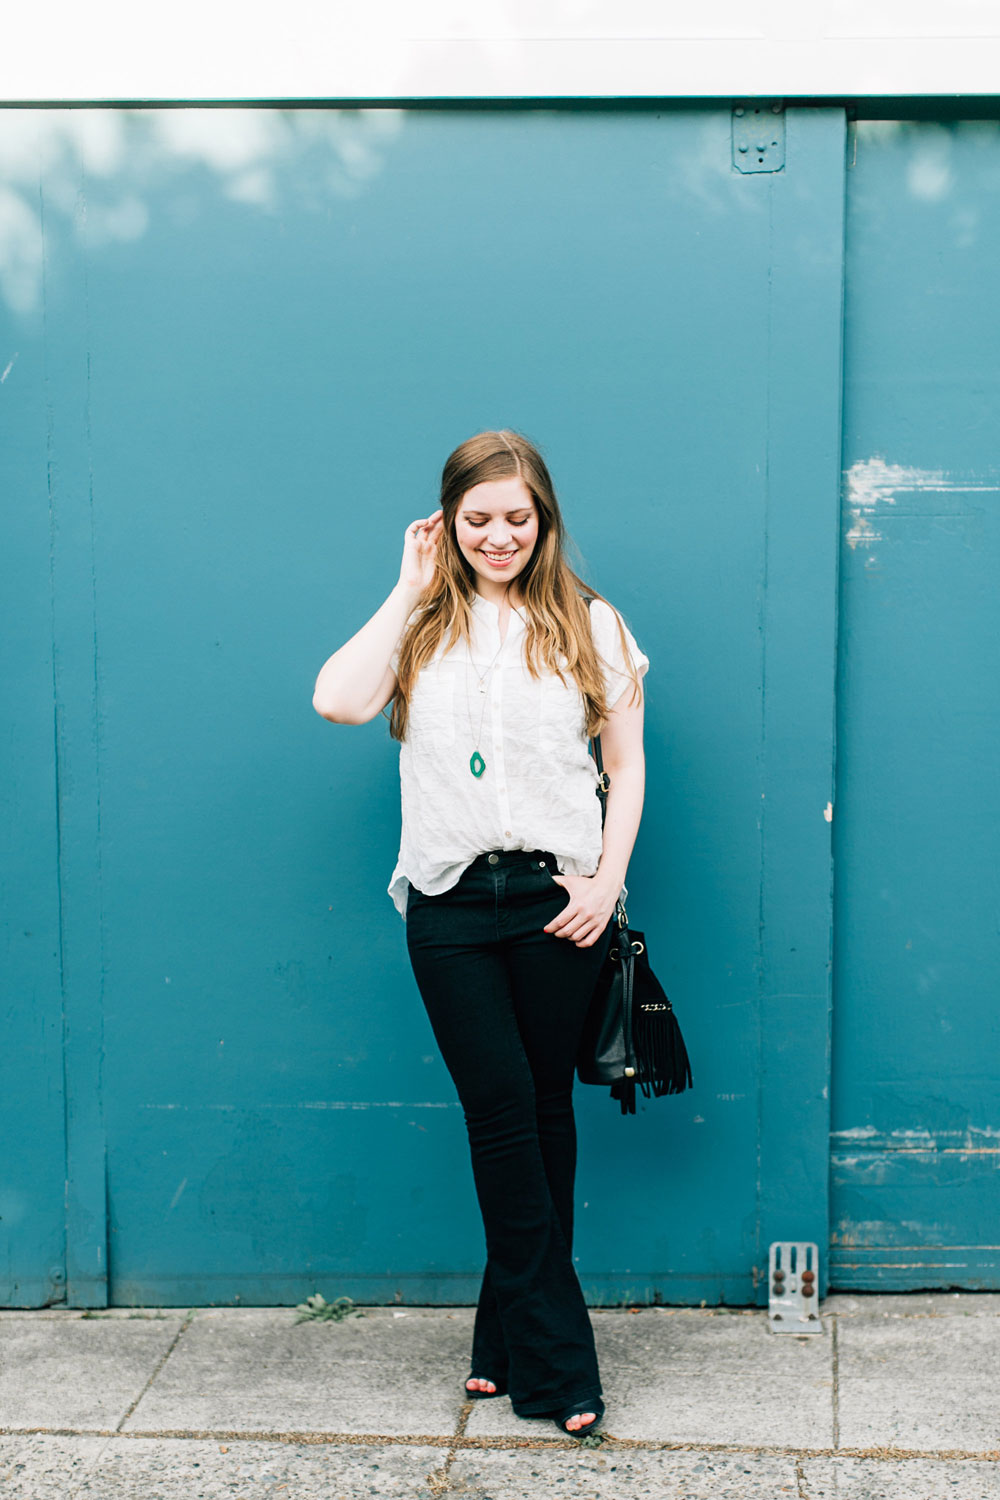 70s Revival Flare Jeans Outfit // hellorigby seattle fashion blog